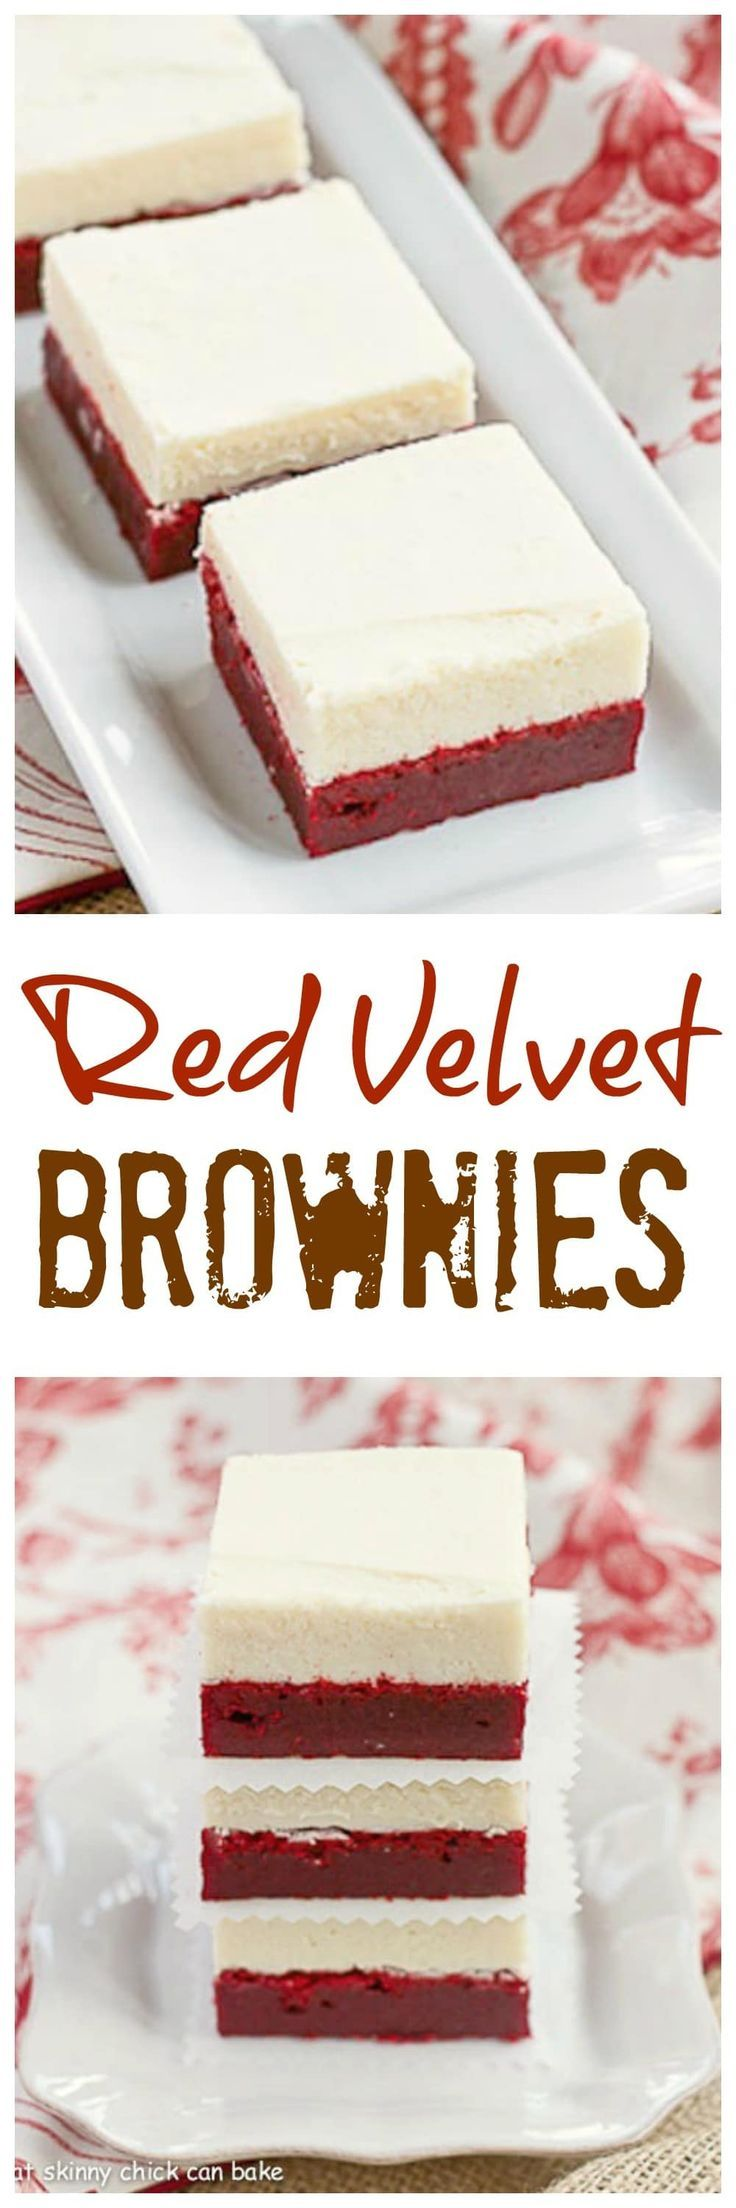 Red Velvet Brownies | Denser than the classic cake , these decadent brownies are topped with white chocolate buttercream! /lizzydo/